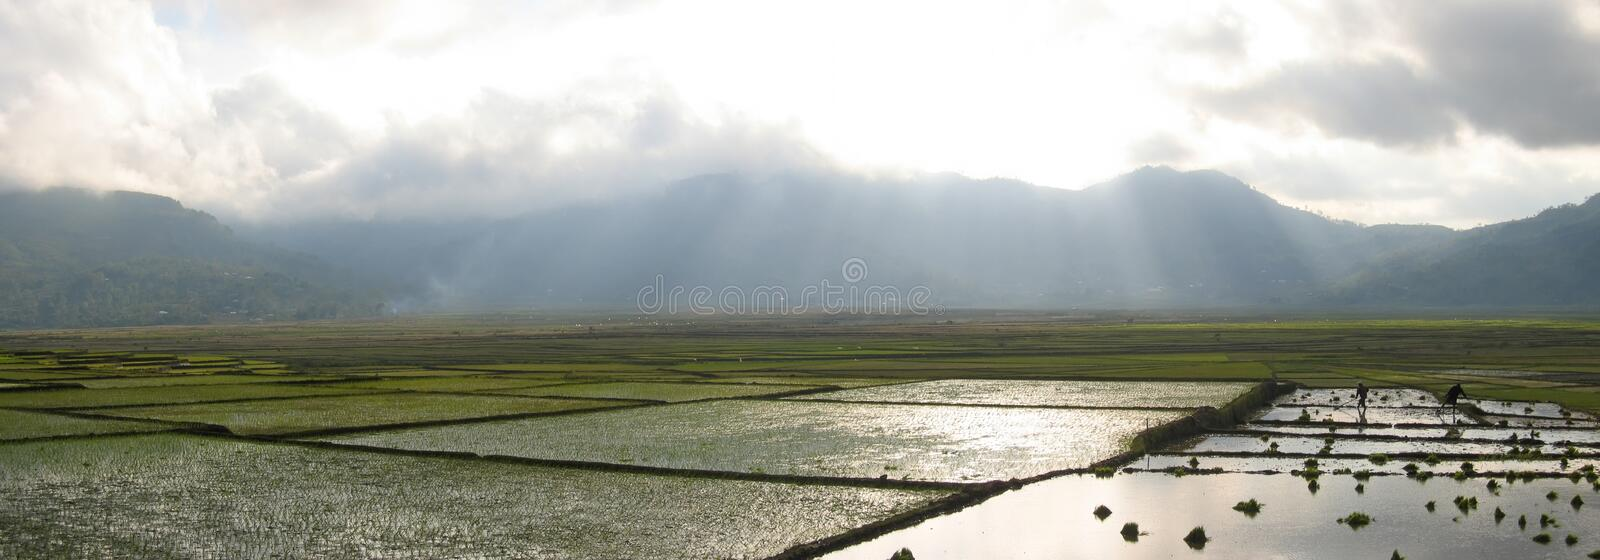 Cara ricefields with sunlight stock image